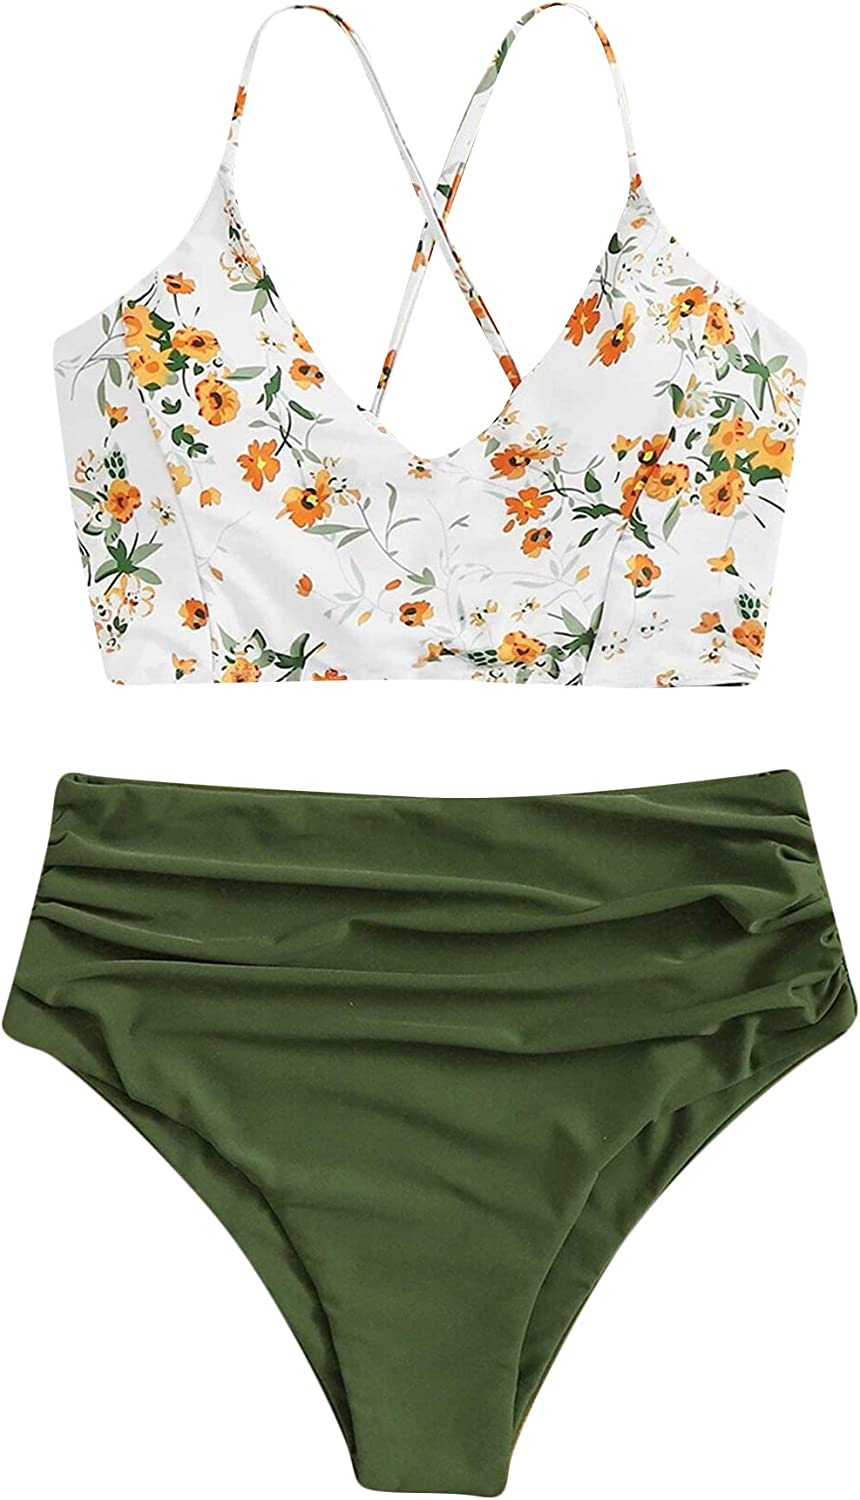 SOLY HUX Women's Plus Size Floral Print Ruched High Waisted Bikini Bathing Suits 2 Piece Swimsuits